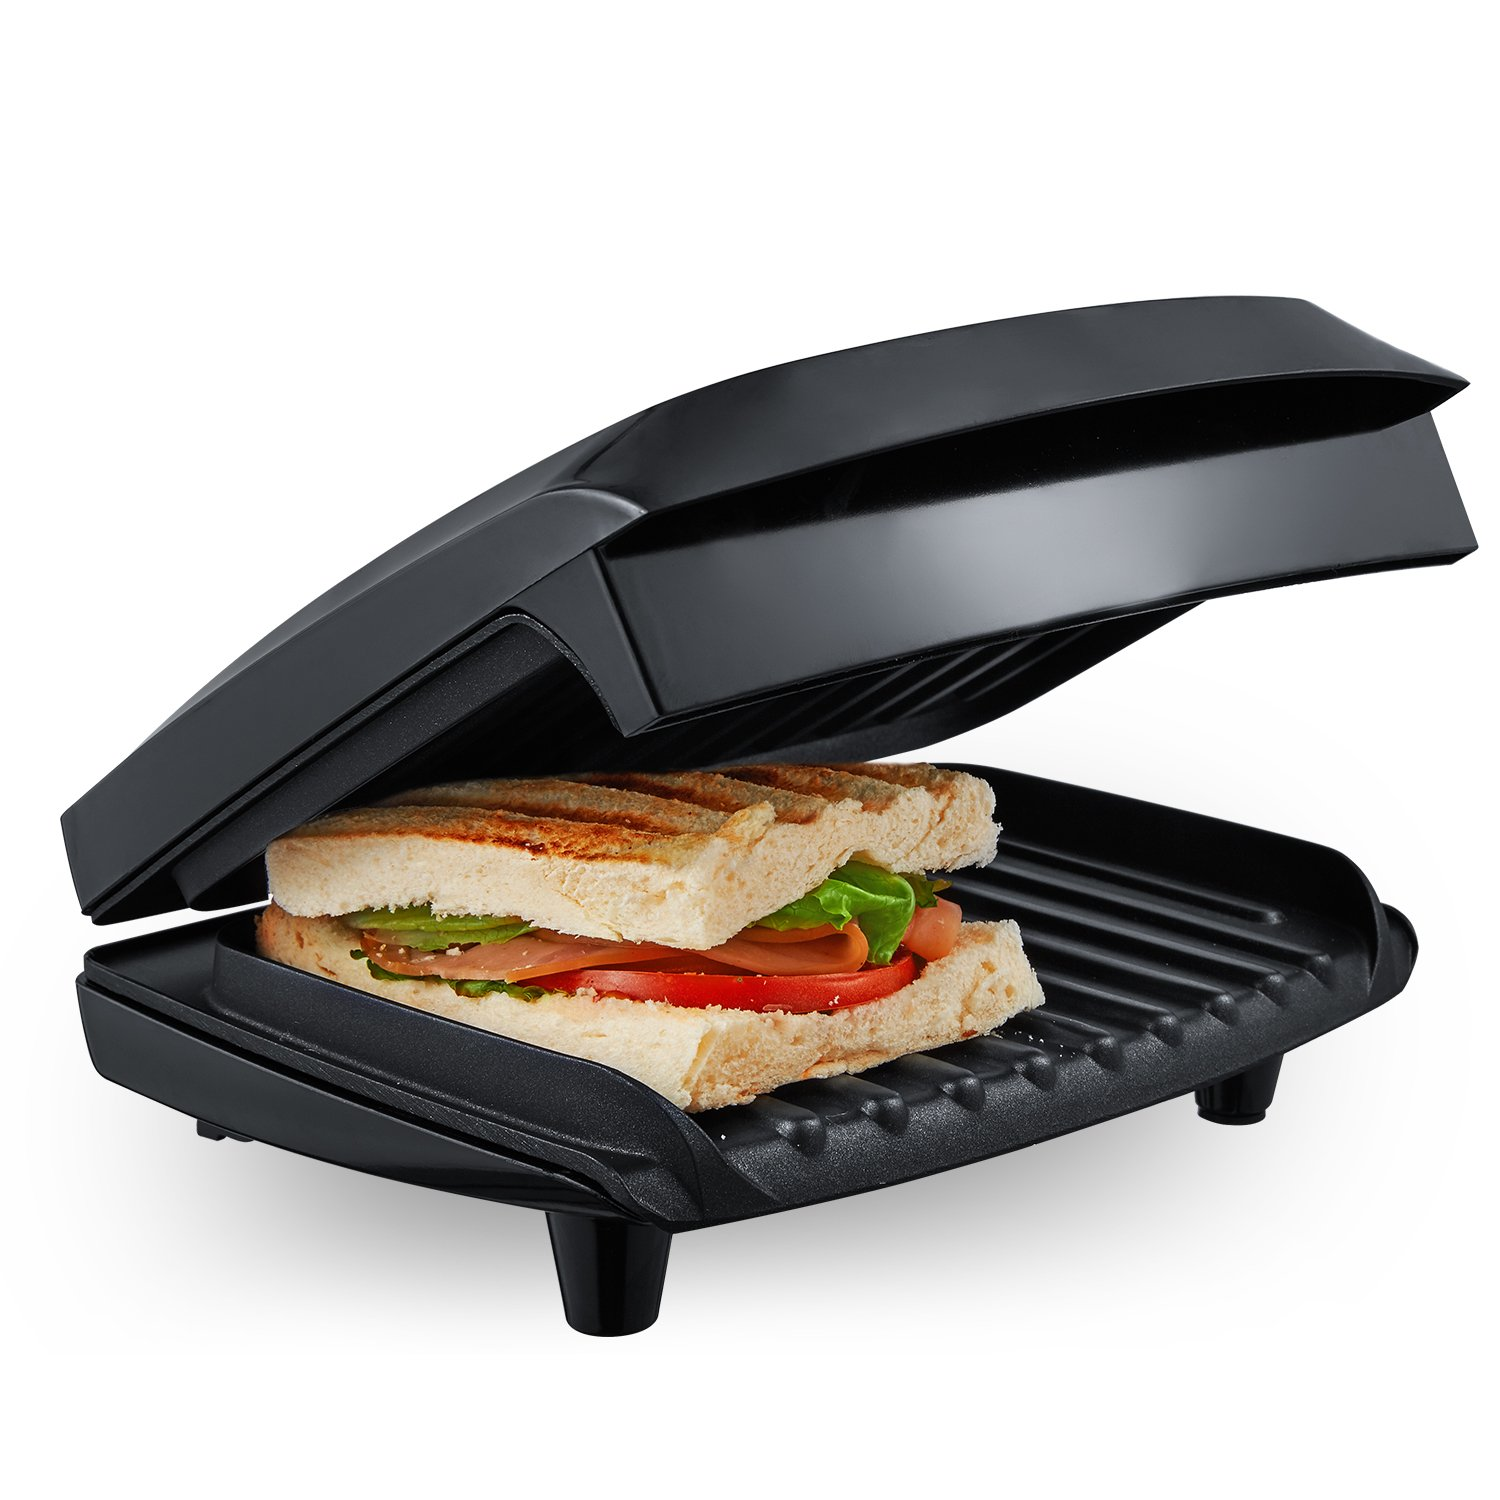 Aicok Panini Press 1000W Fast Cooking Non-Stick Sandwich Maker, 2-Serving Compact Indoor Grill with Drip Tray, Black by AICOK (Image #5)